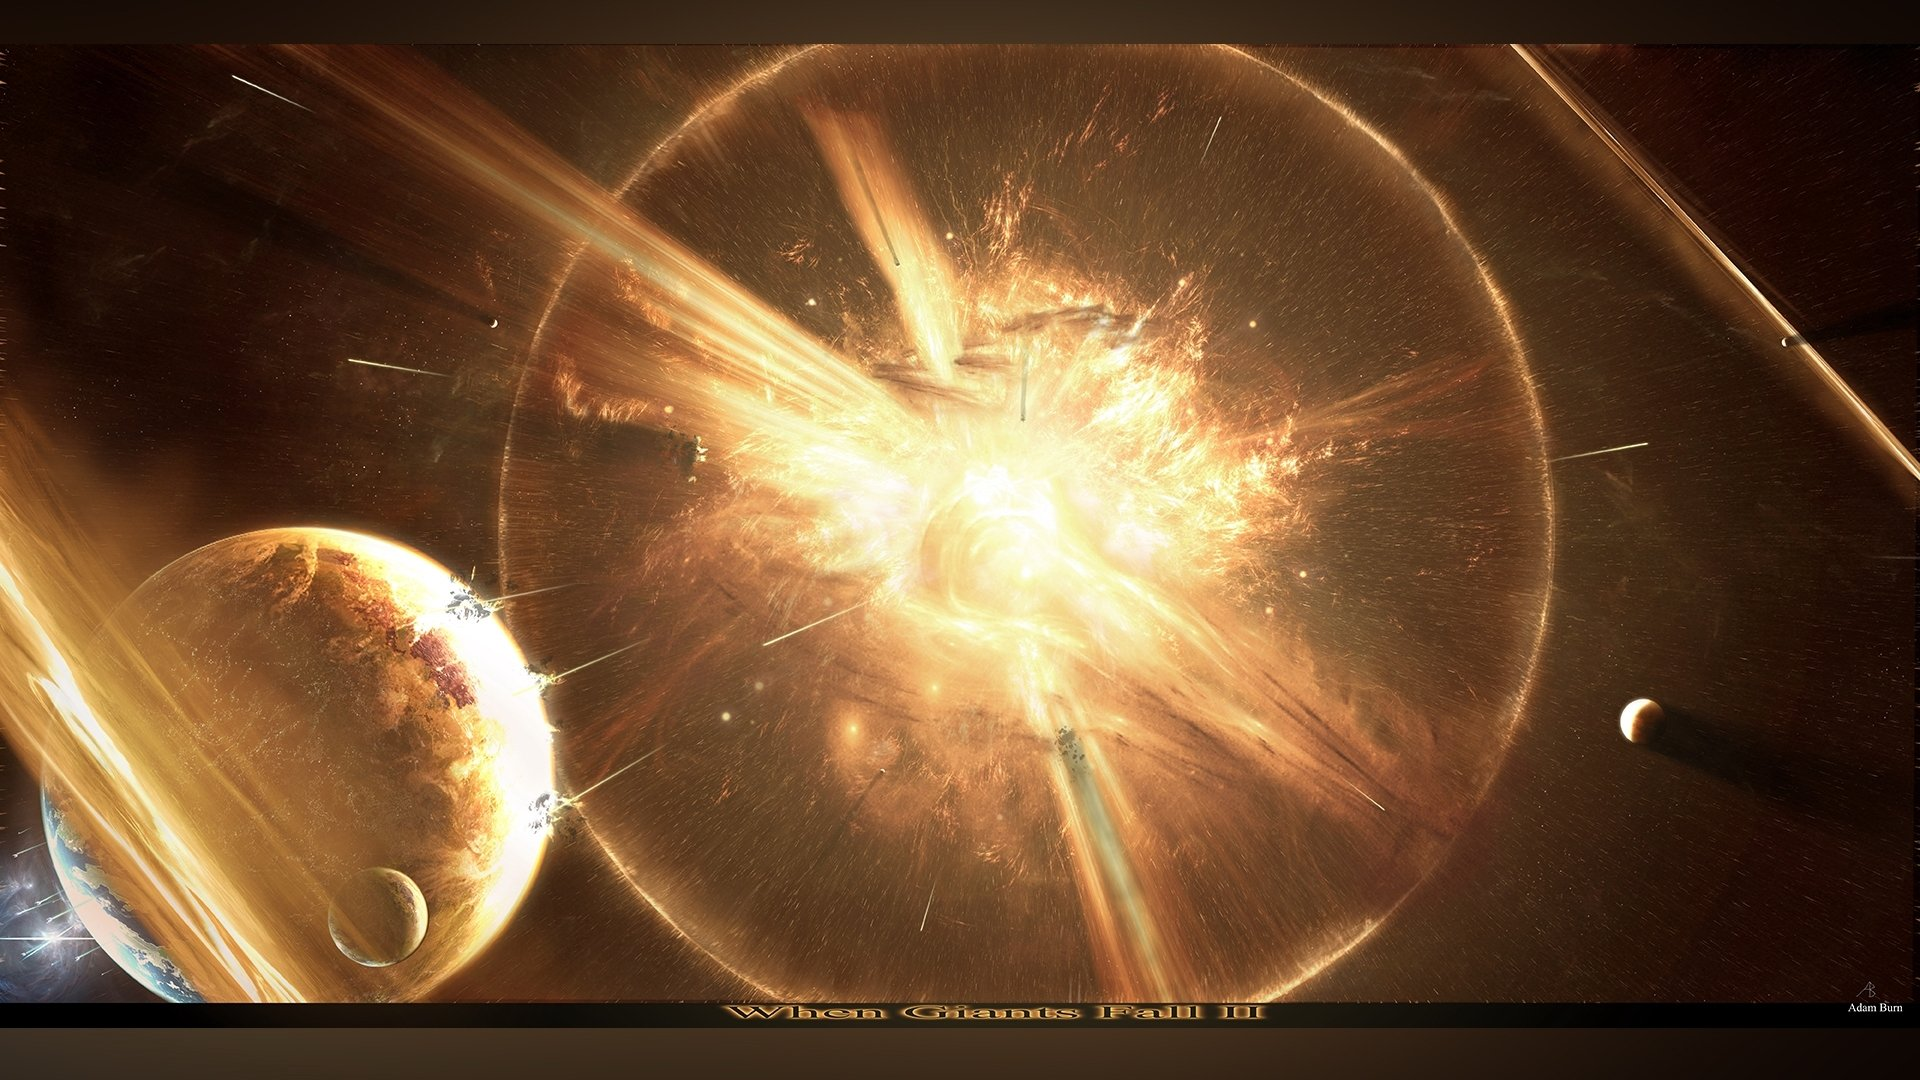 Science-Fiction - Explosion  Wallpaper